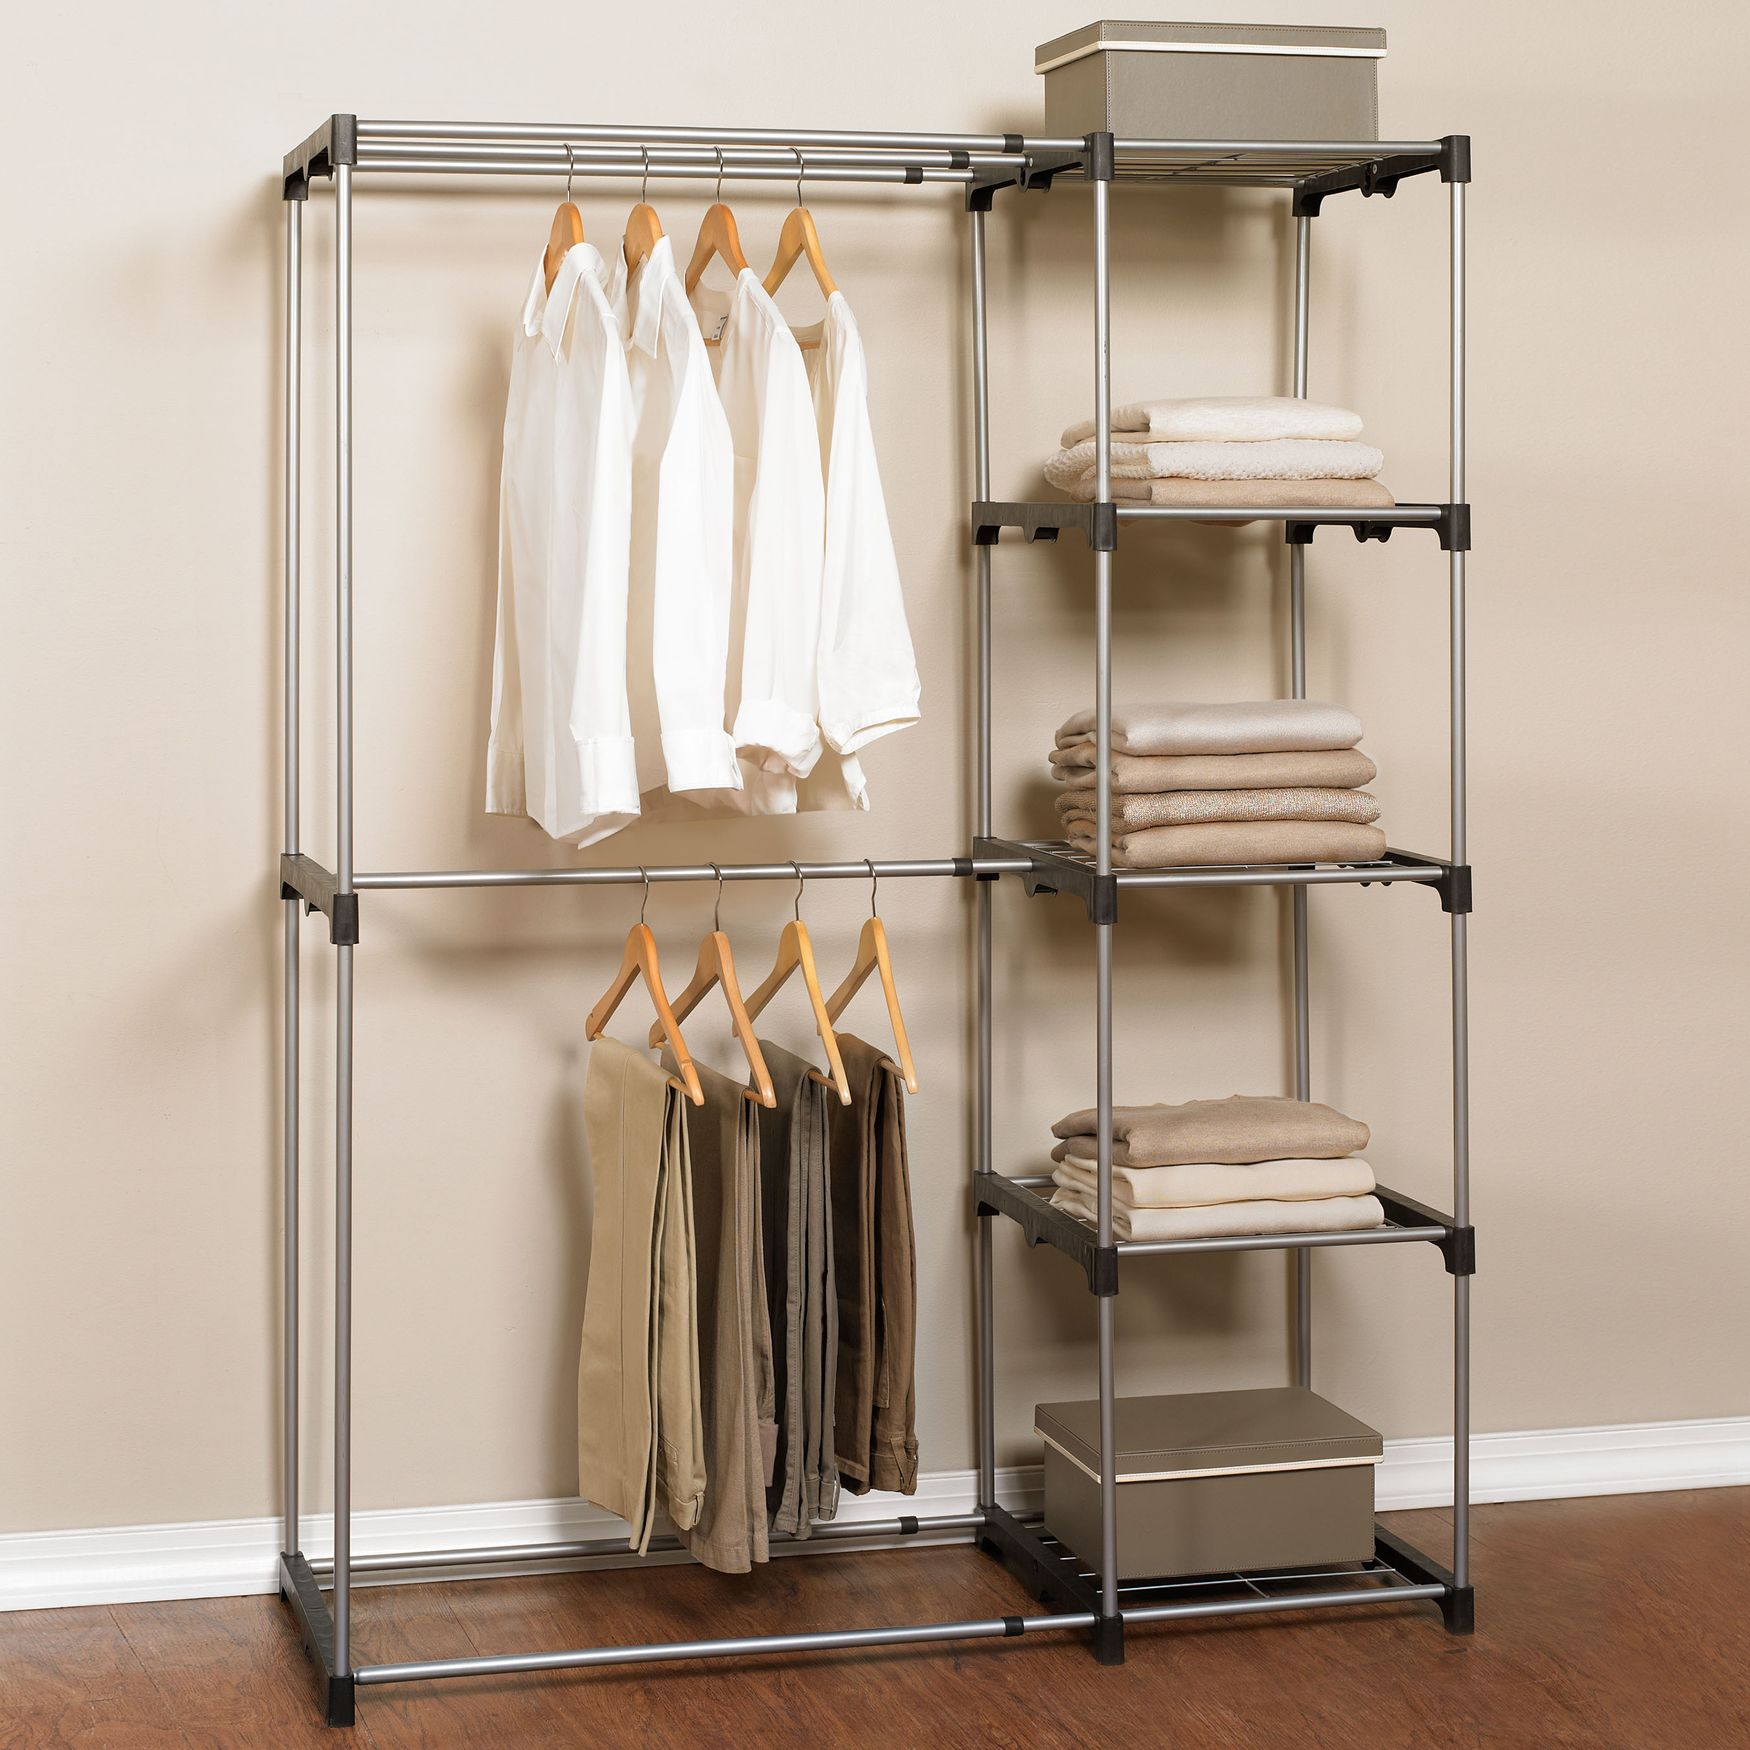 Our Garment Rack With Shelves Instantly Creates Much Needed Storage Space.  Hanging Rods Are